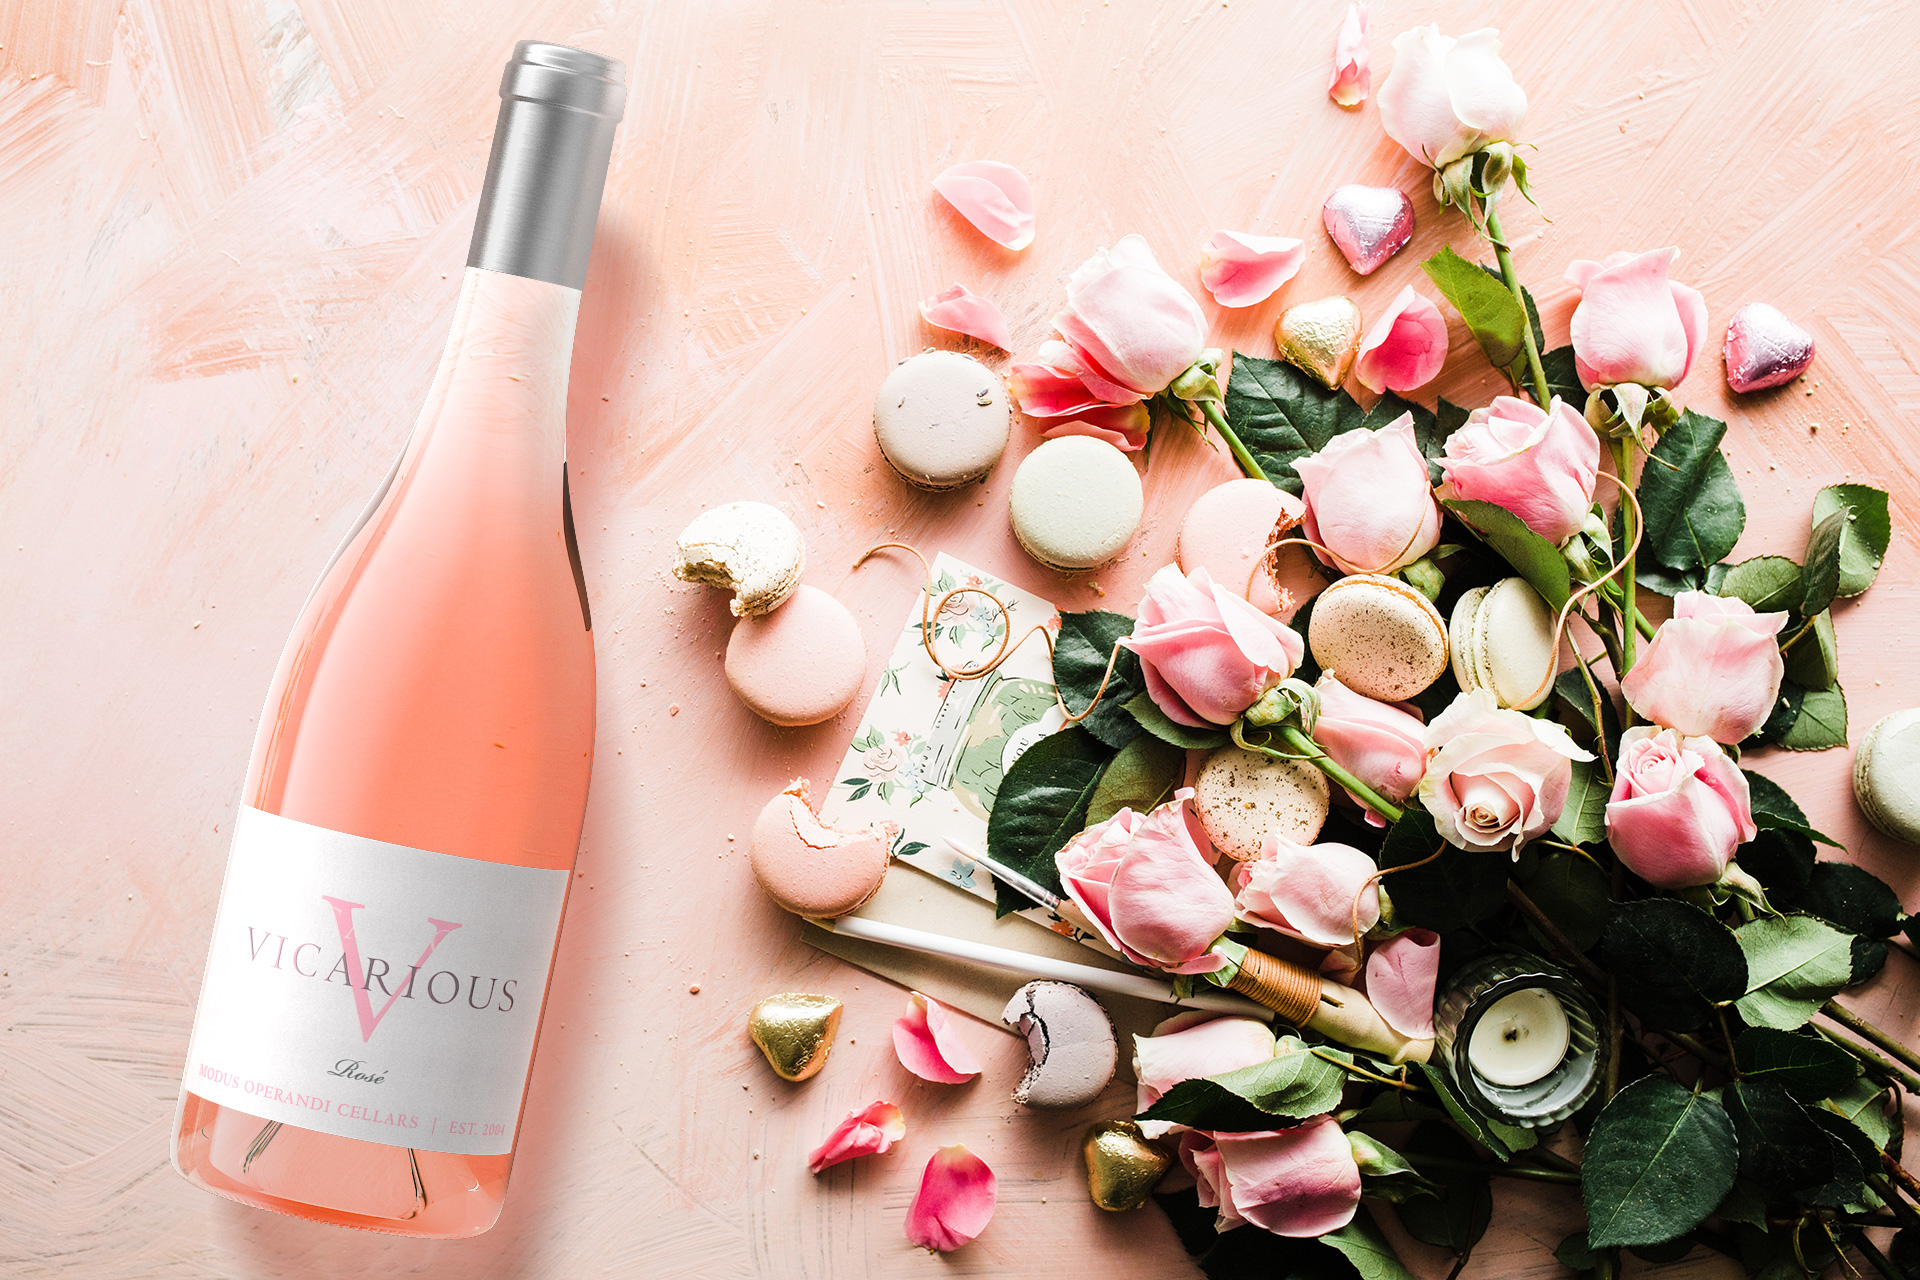 Macarons and roses Lifestyle Image for Modus Operandi Vineyards